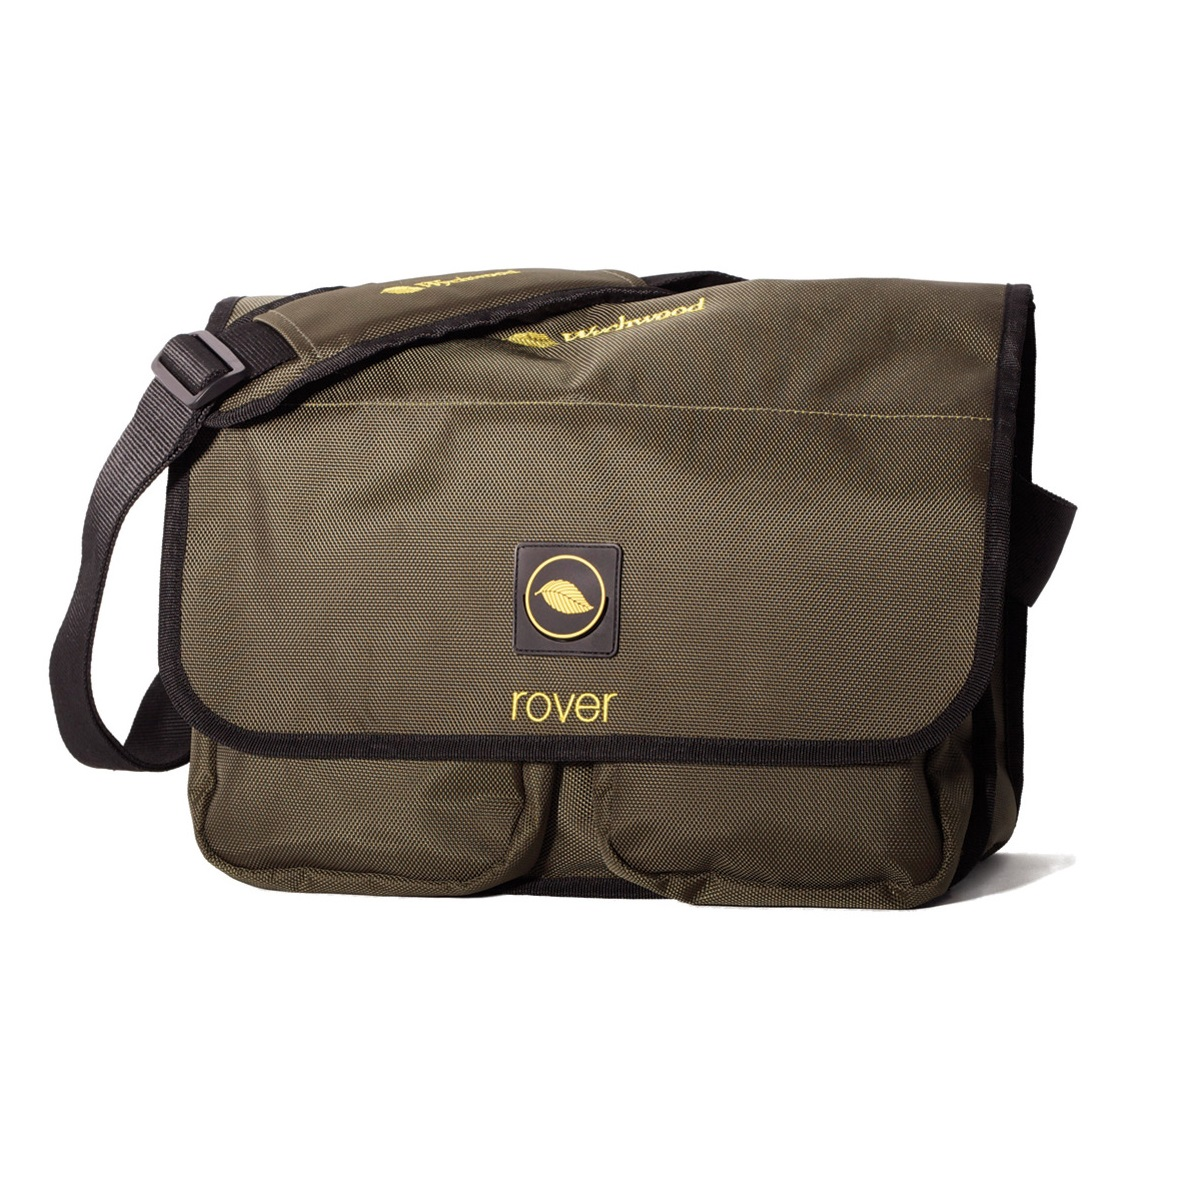 Taška Wychwood Rover Tackle Bag